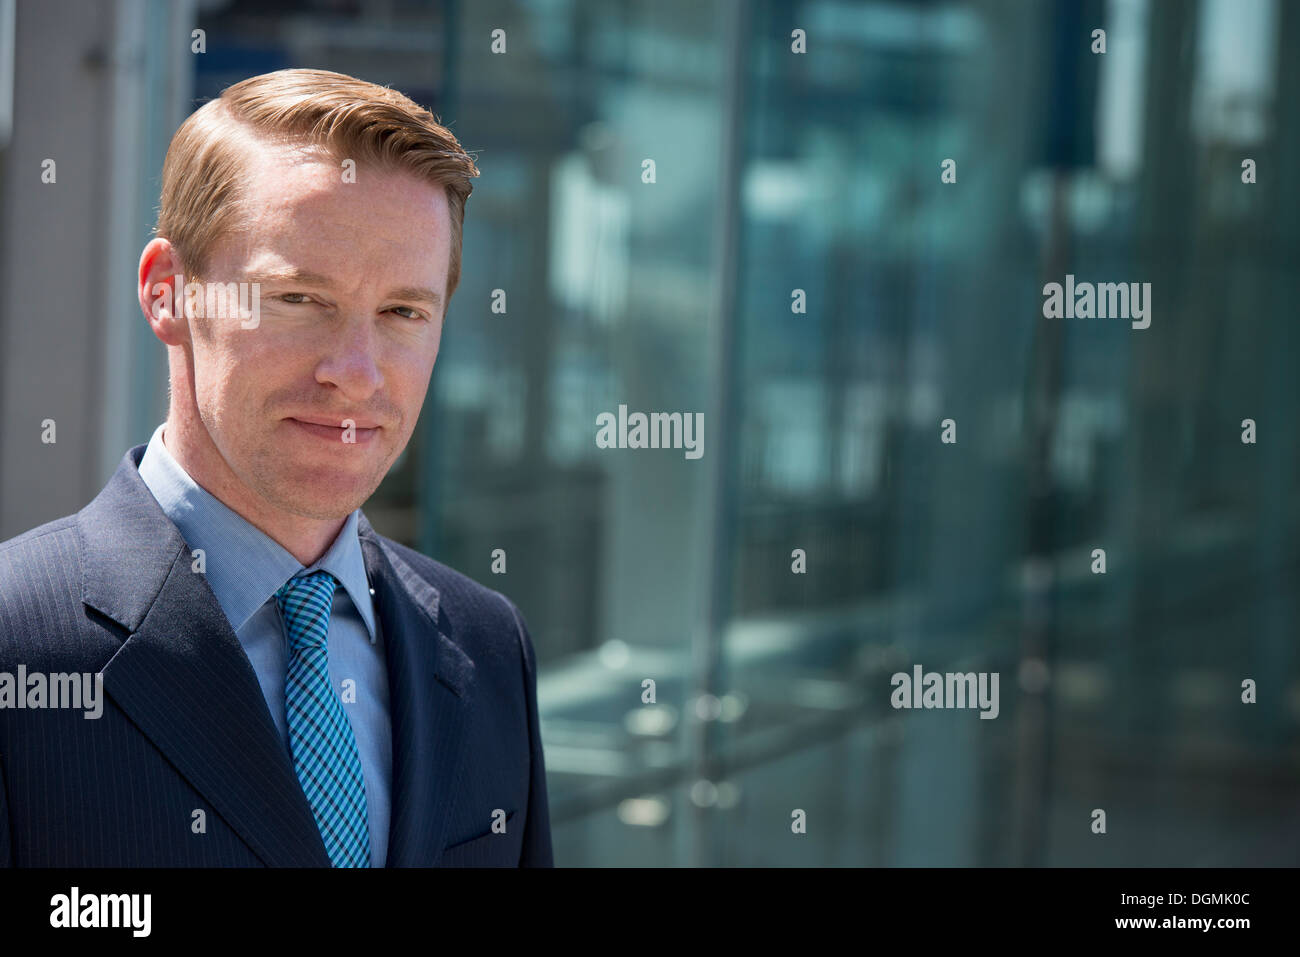 A man in a business suit outside a building with a glass exterior. - Stock Image